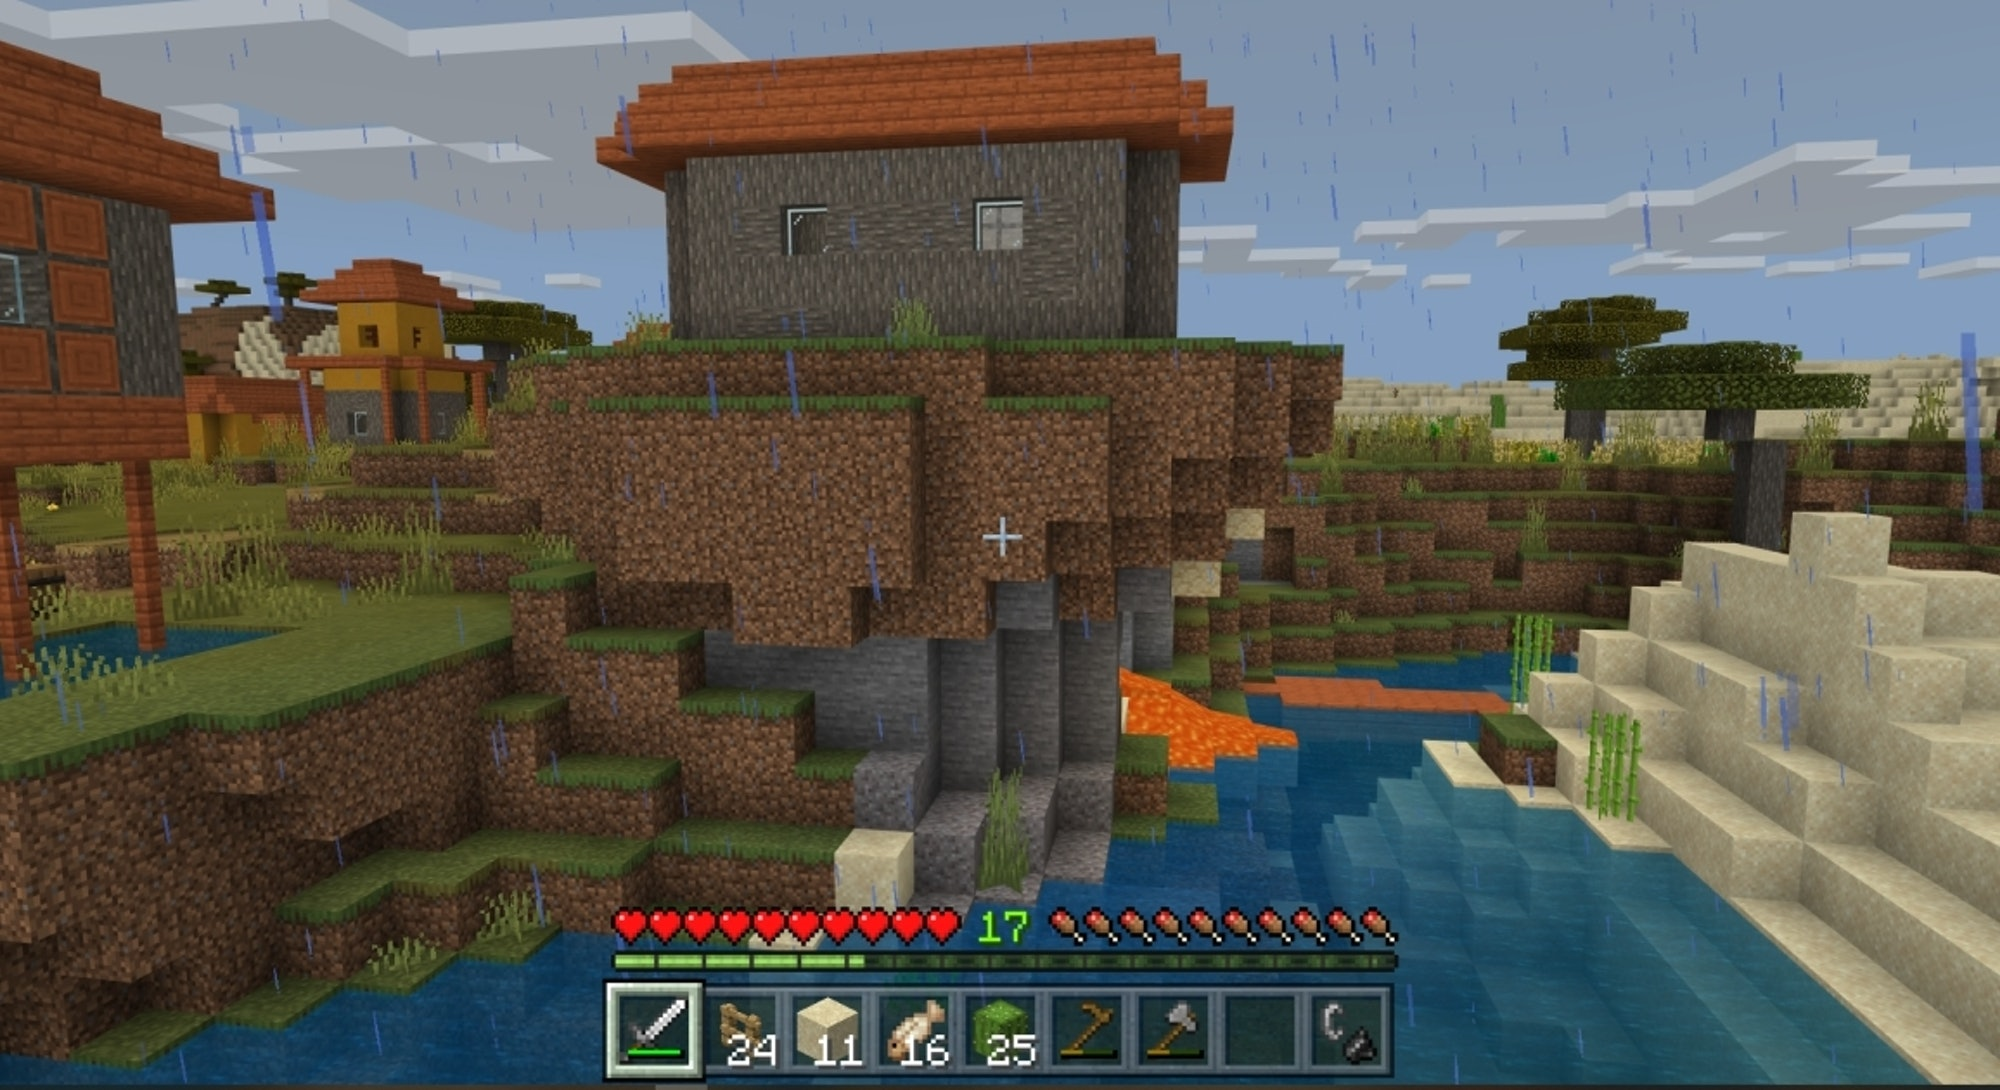 Screen shot from Minecraft. Video games. Gaming. Video gaming.